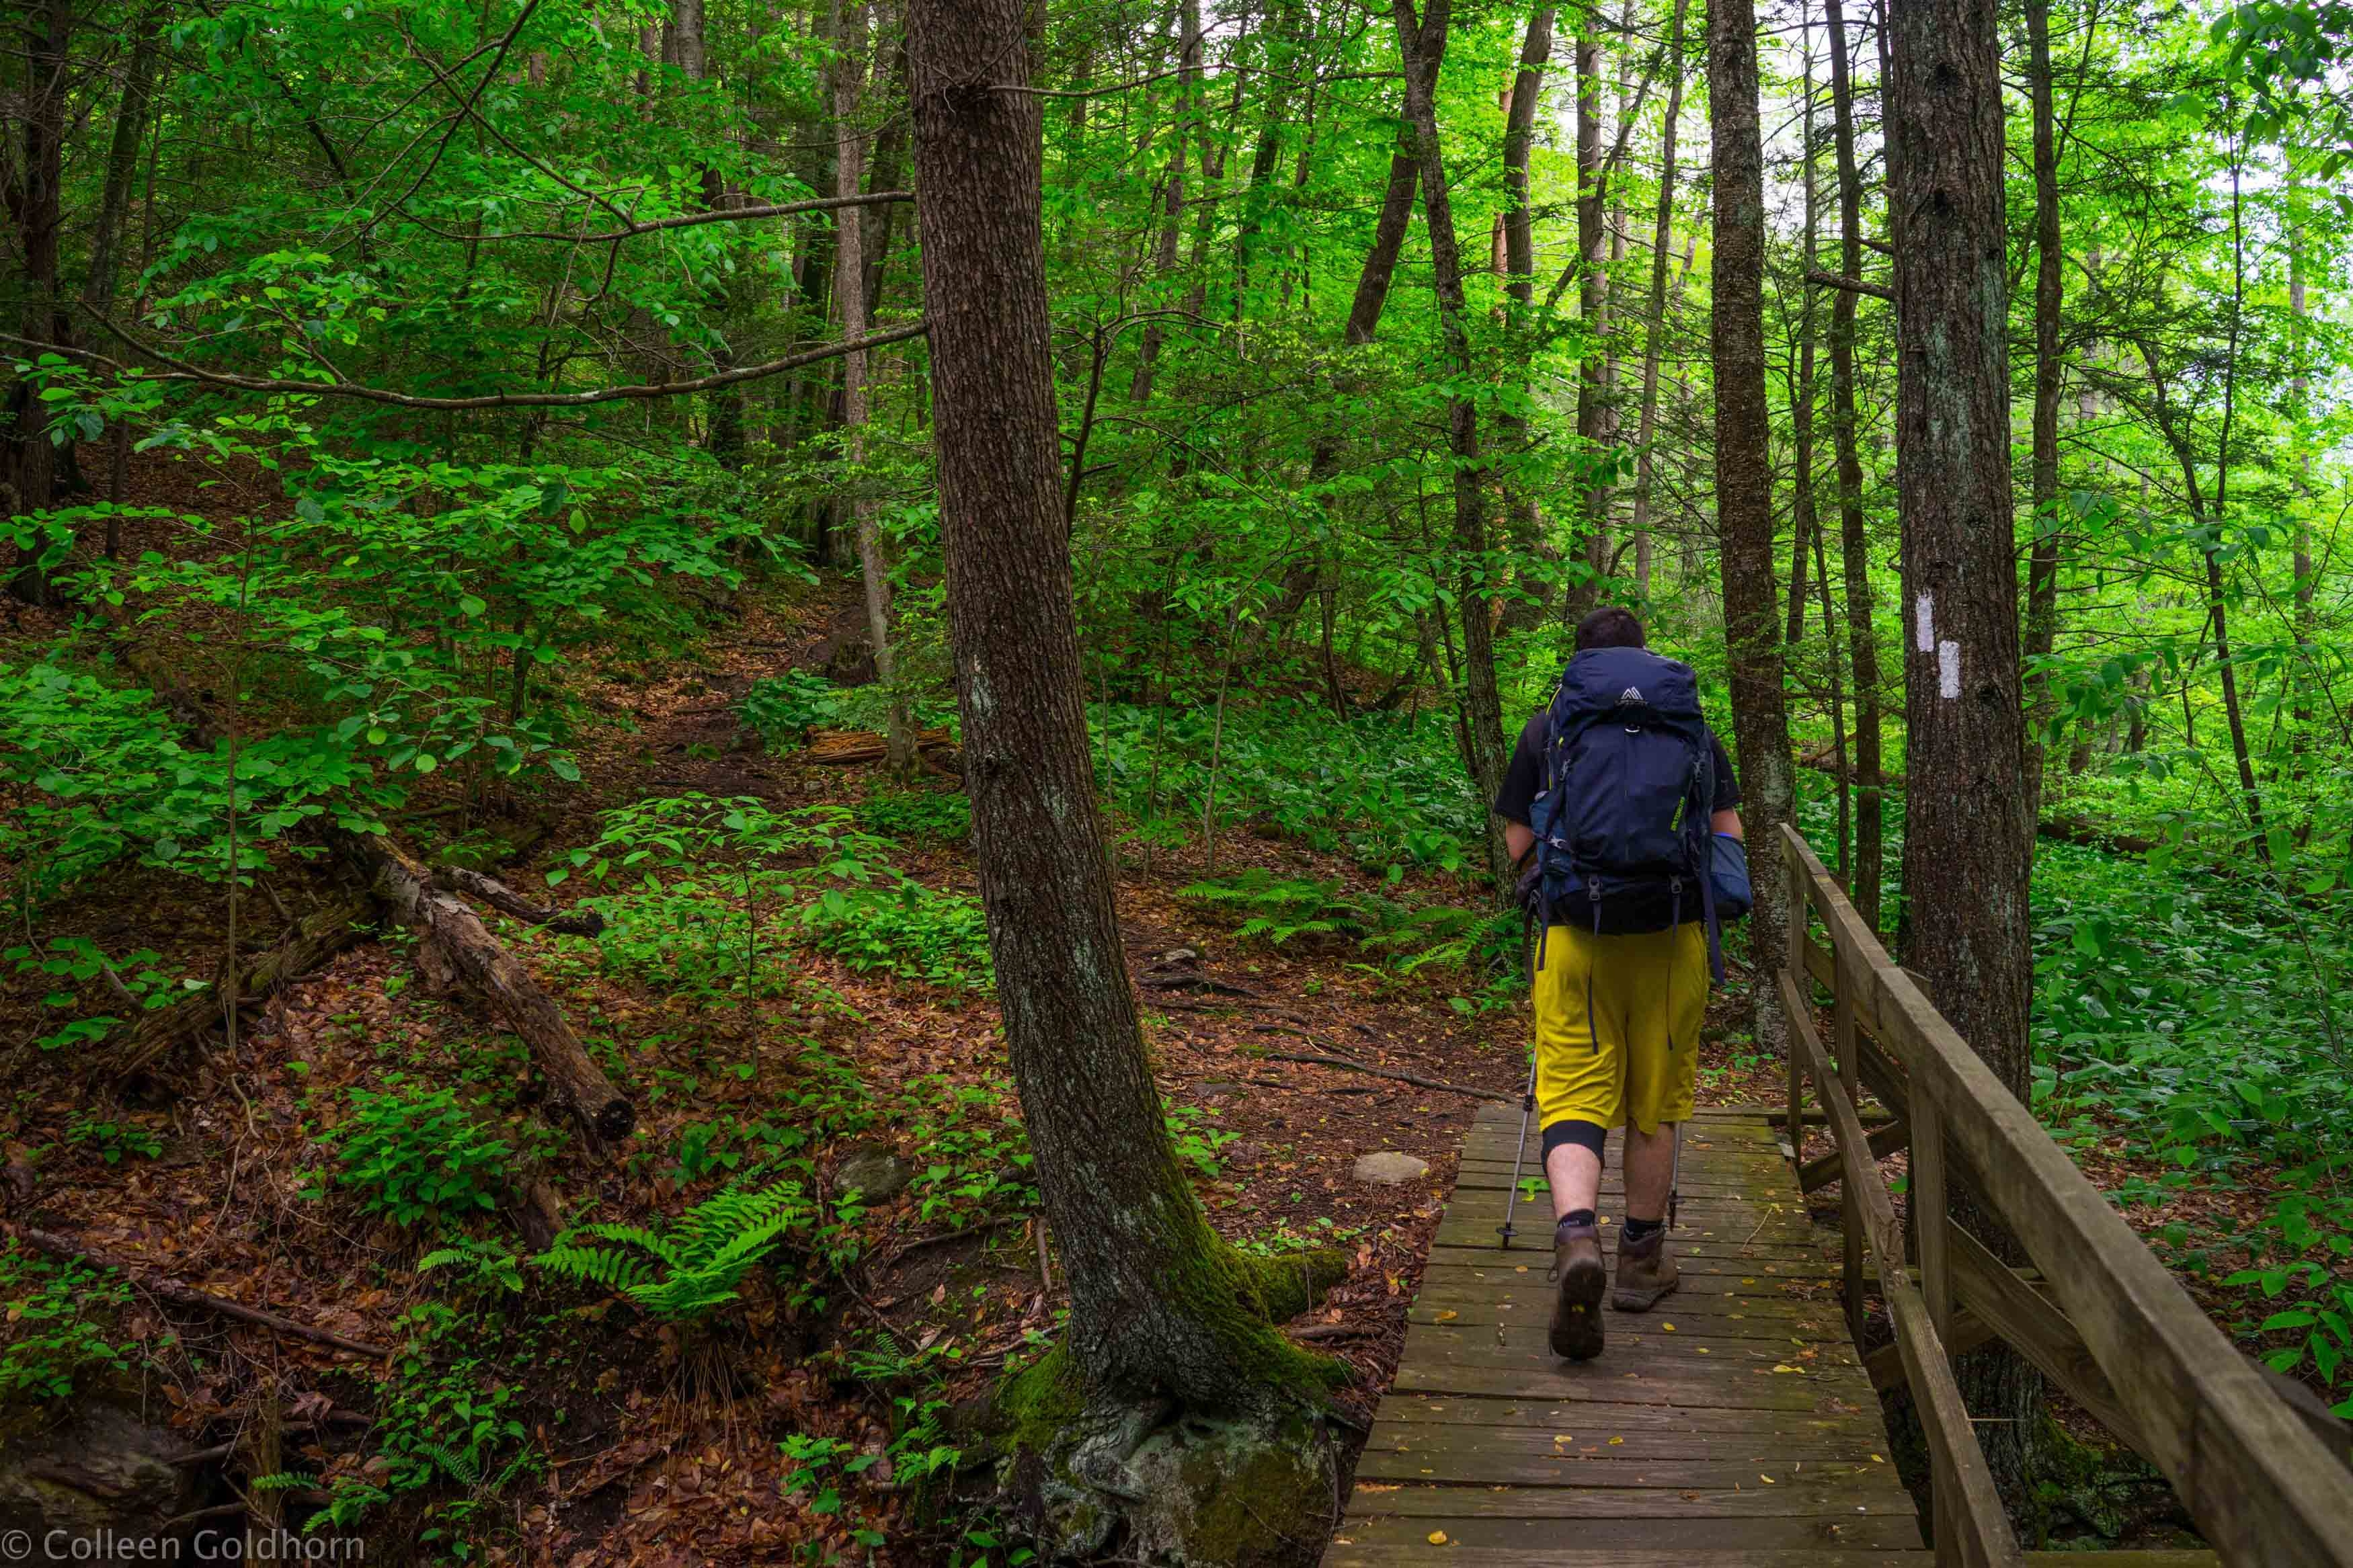 New Jersey: Must-See Day Hikes on the Appalachian Trail